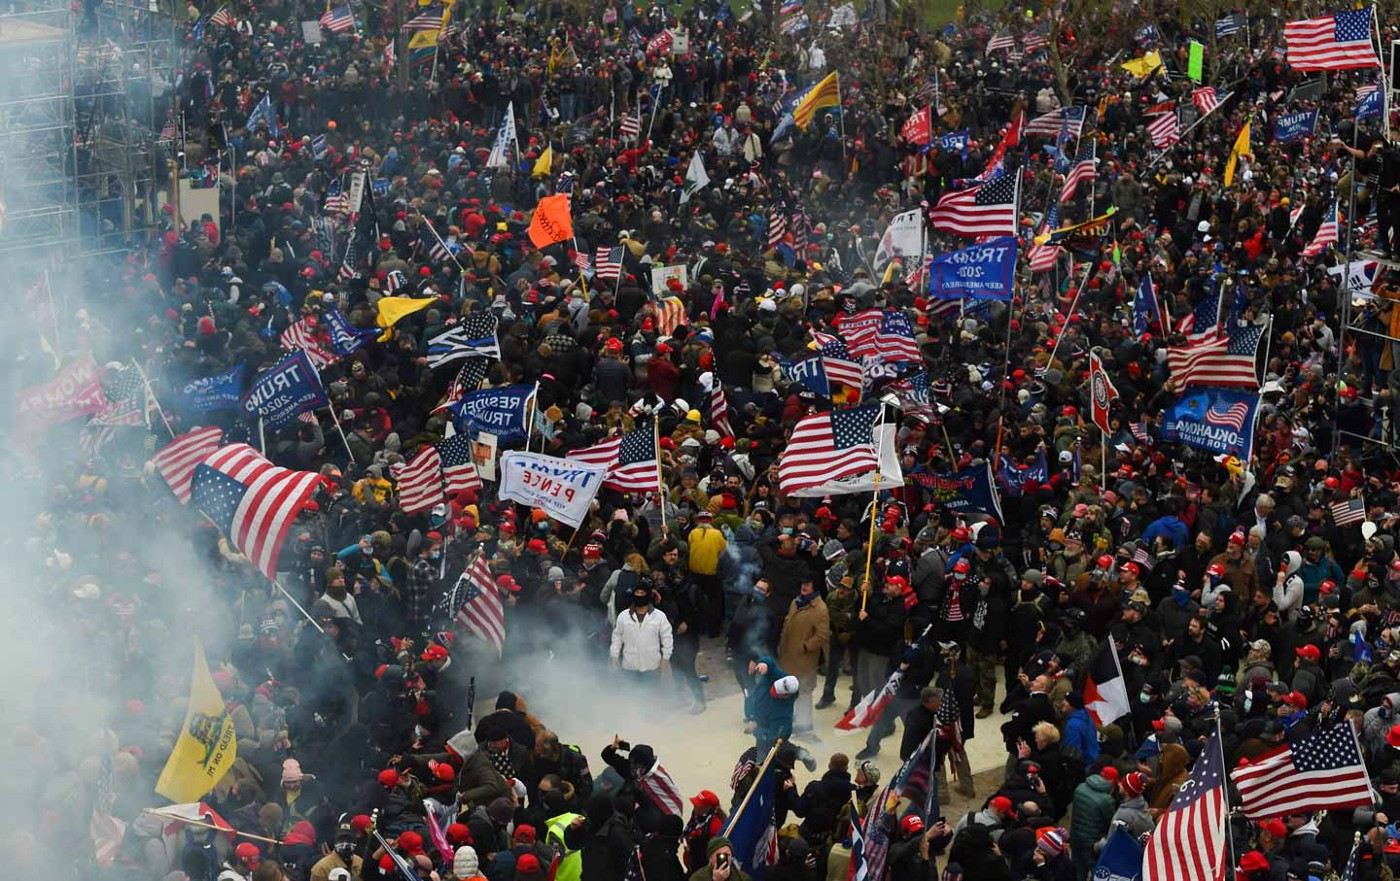 Trump supporters storm the US Capitol, clashing with security, on January 6, 2021 (Roberto Schmidt / AFP via Getty Images)